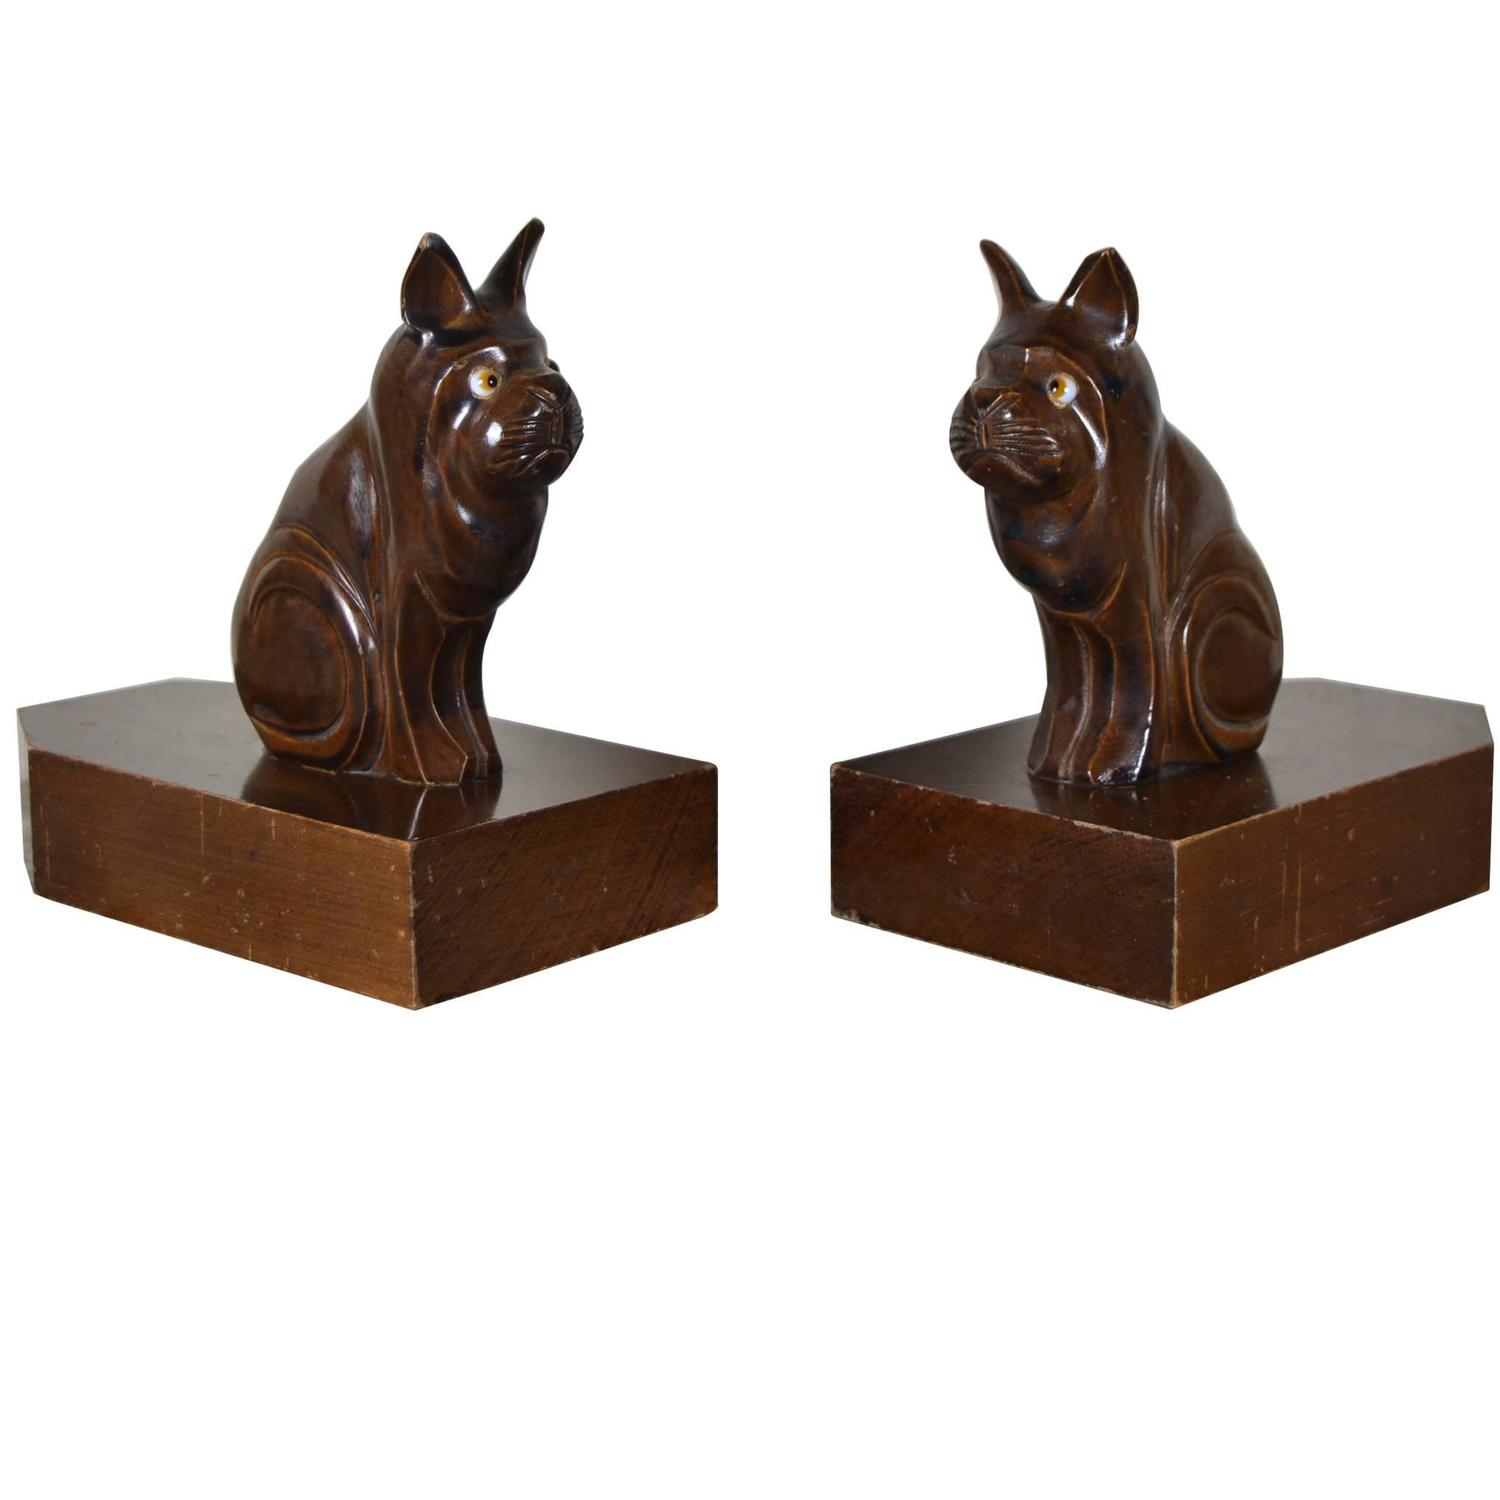 art deco carved wood dog figural bookends for sale at 1stdibs. Black Bedroom Furniture Sets. Home Design Ideas